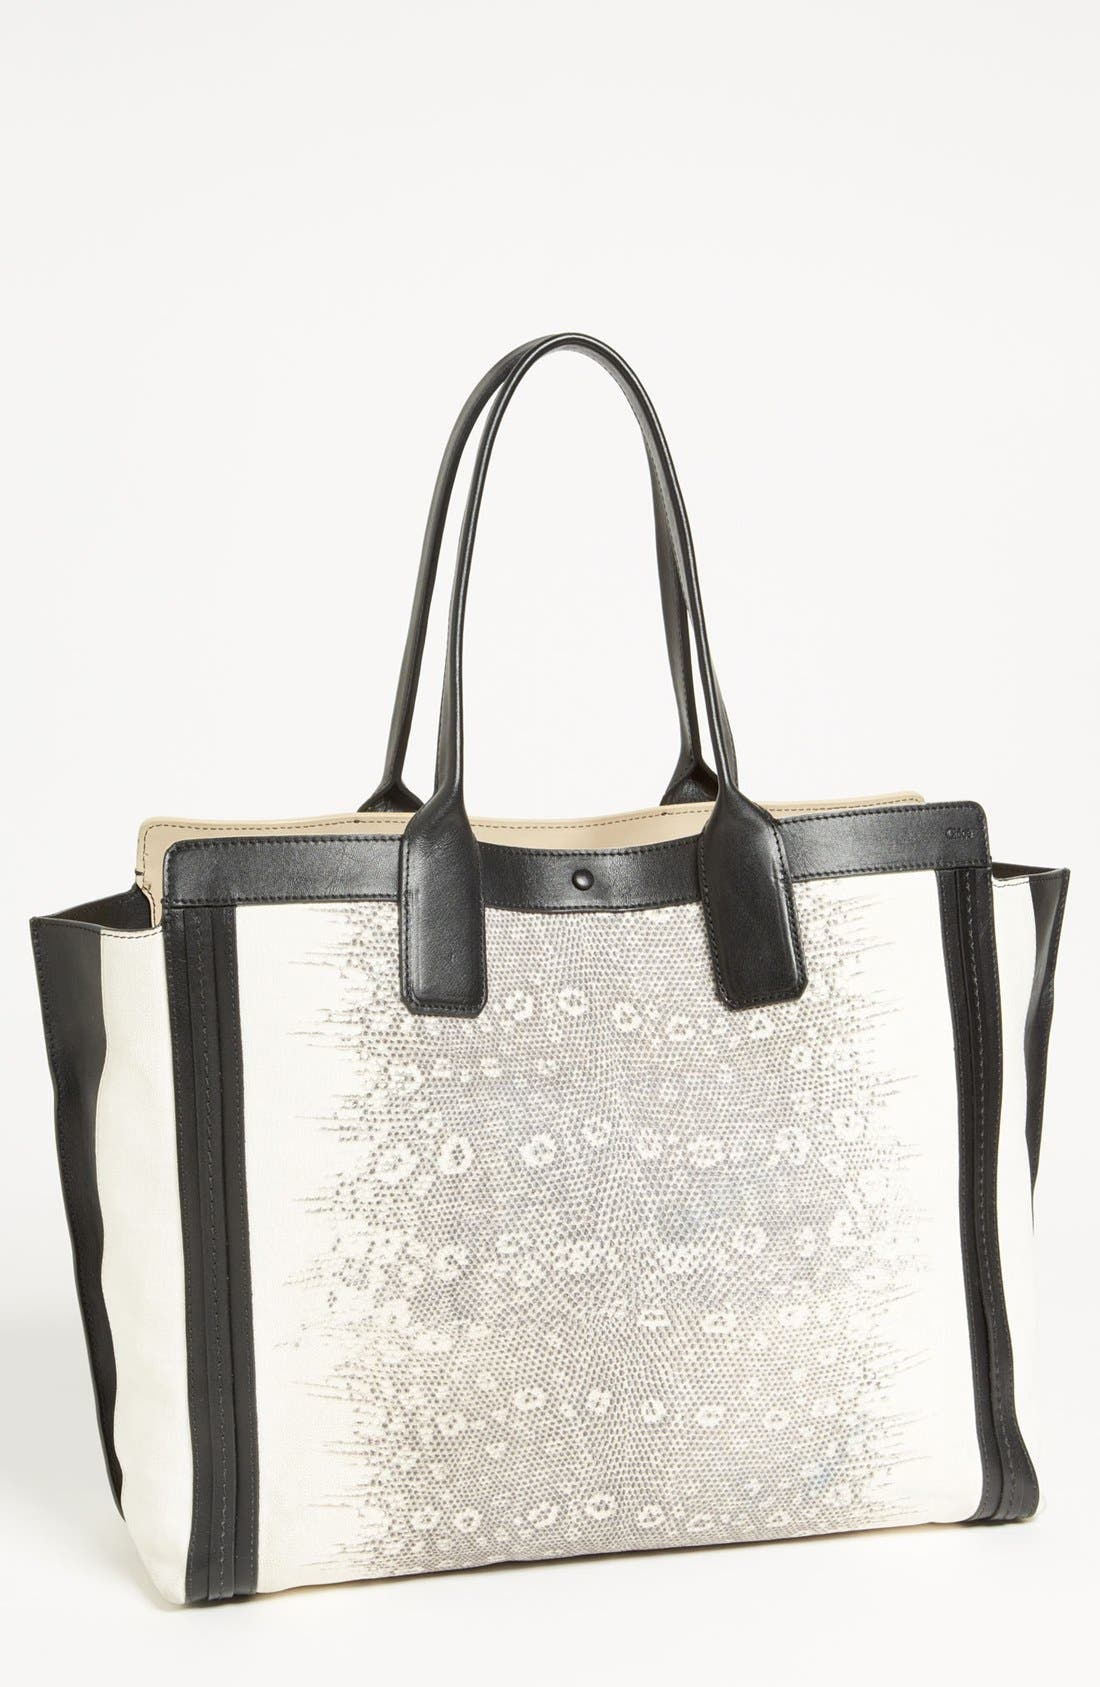 Main Image - Chloé 'Alison - Lizard' Printed Leather Tote